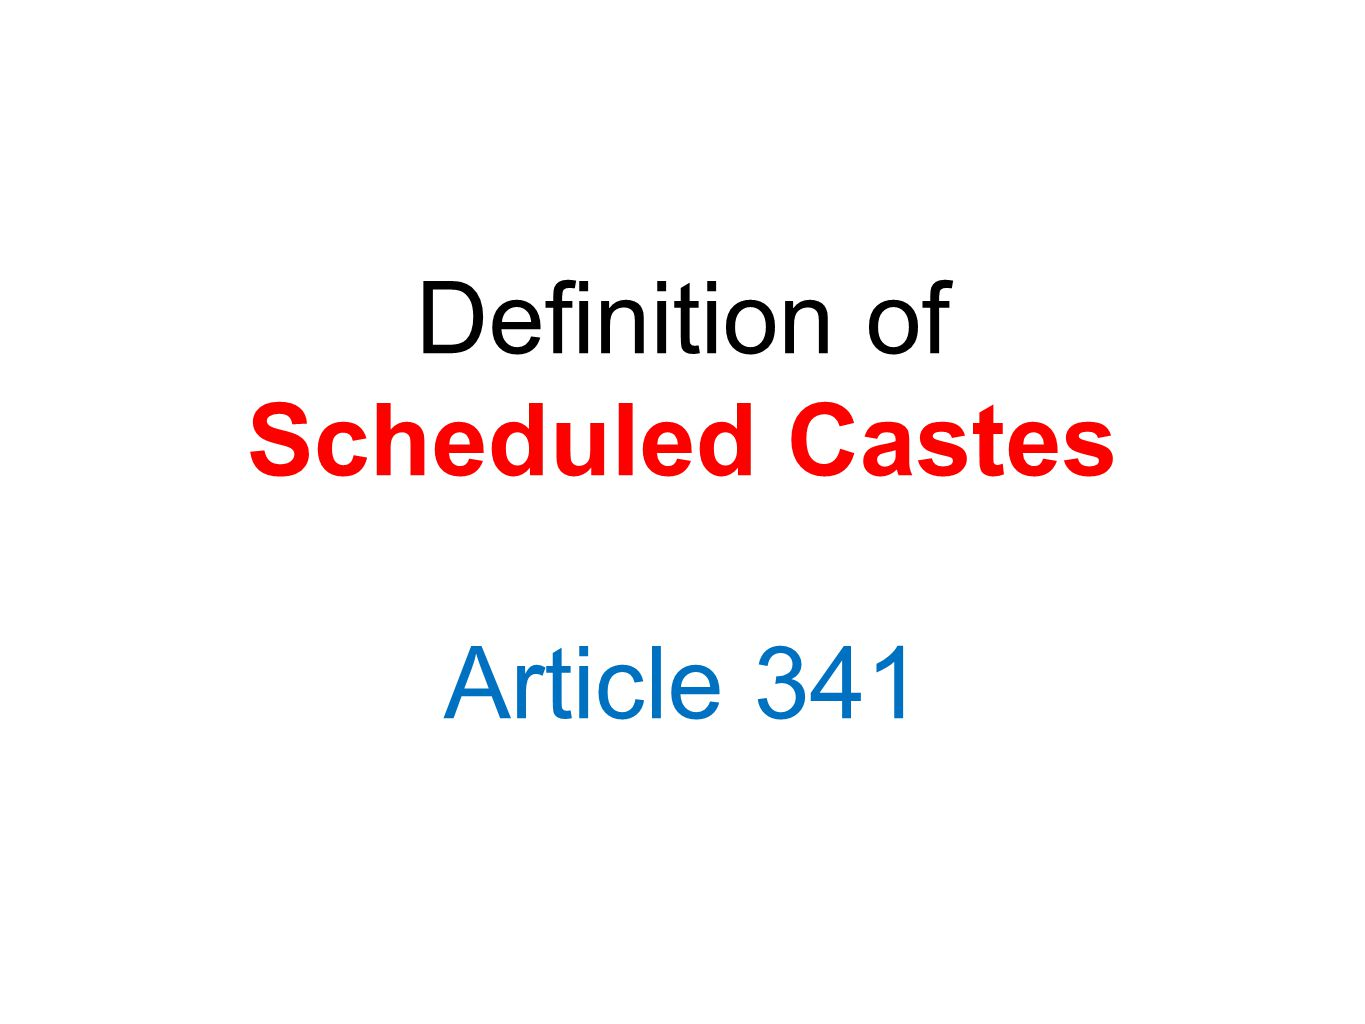 Definition of Scheduled Castes Article 341